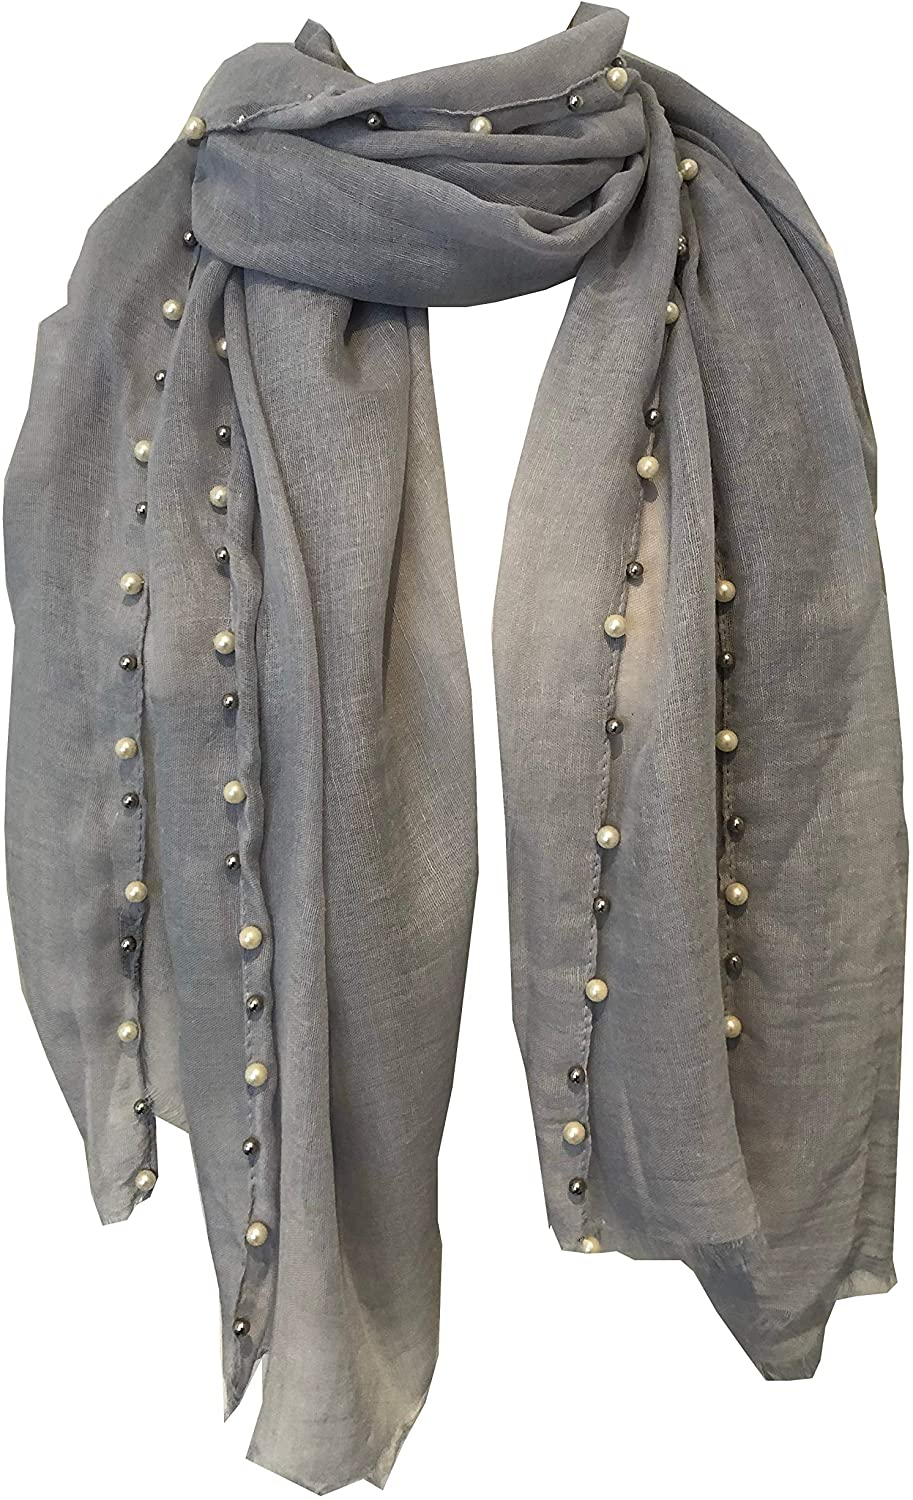 Pamper Yourself Now Grey with Beads and Pearls with Frayed Edge Long Soft Scarf/wrap